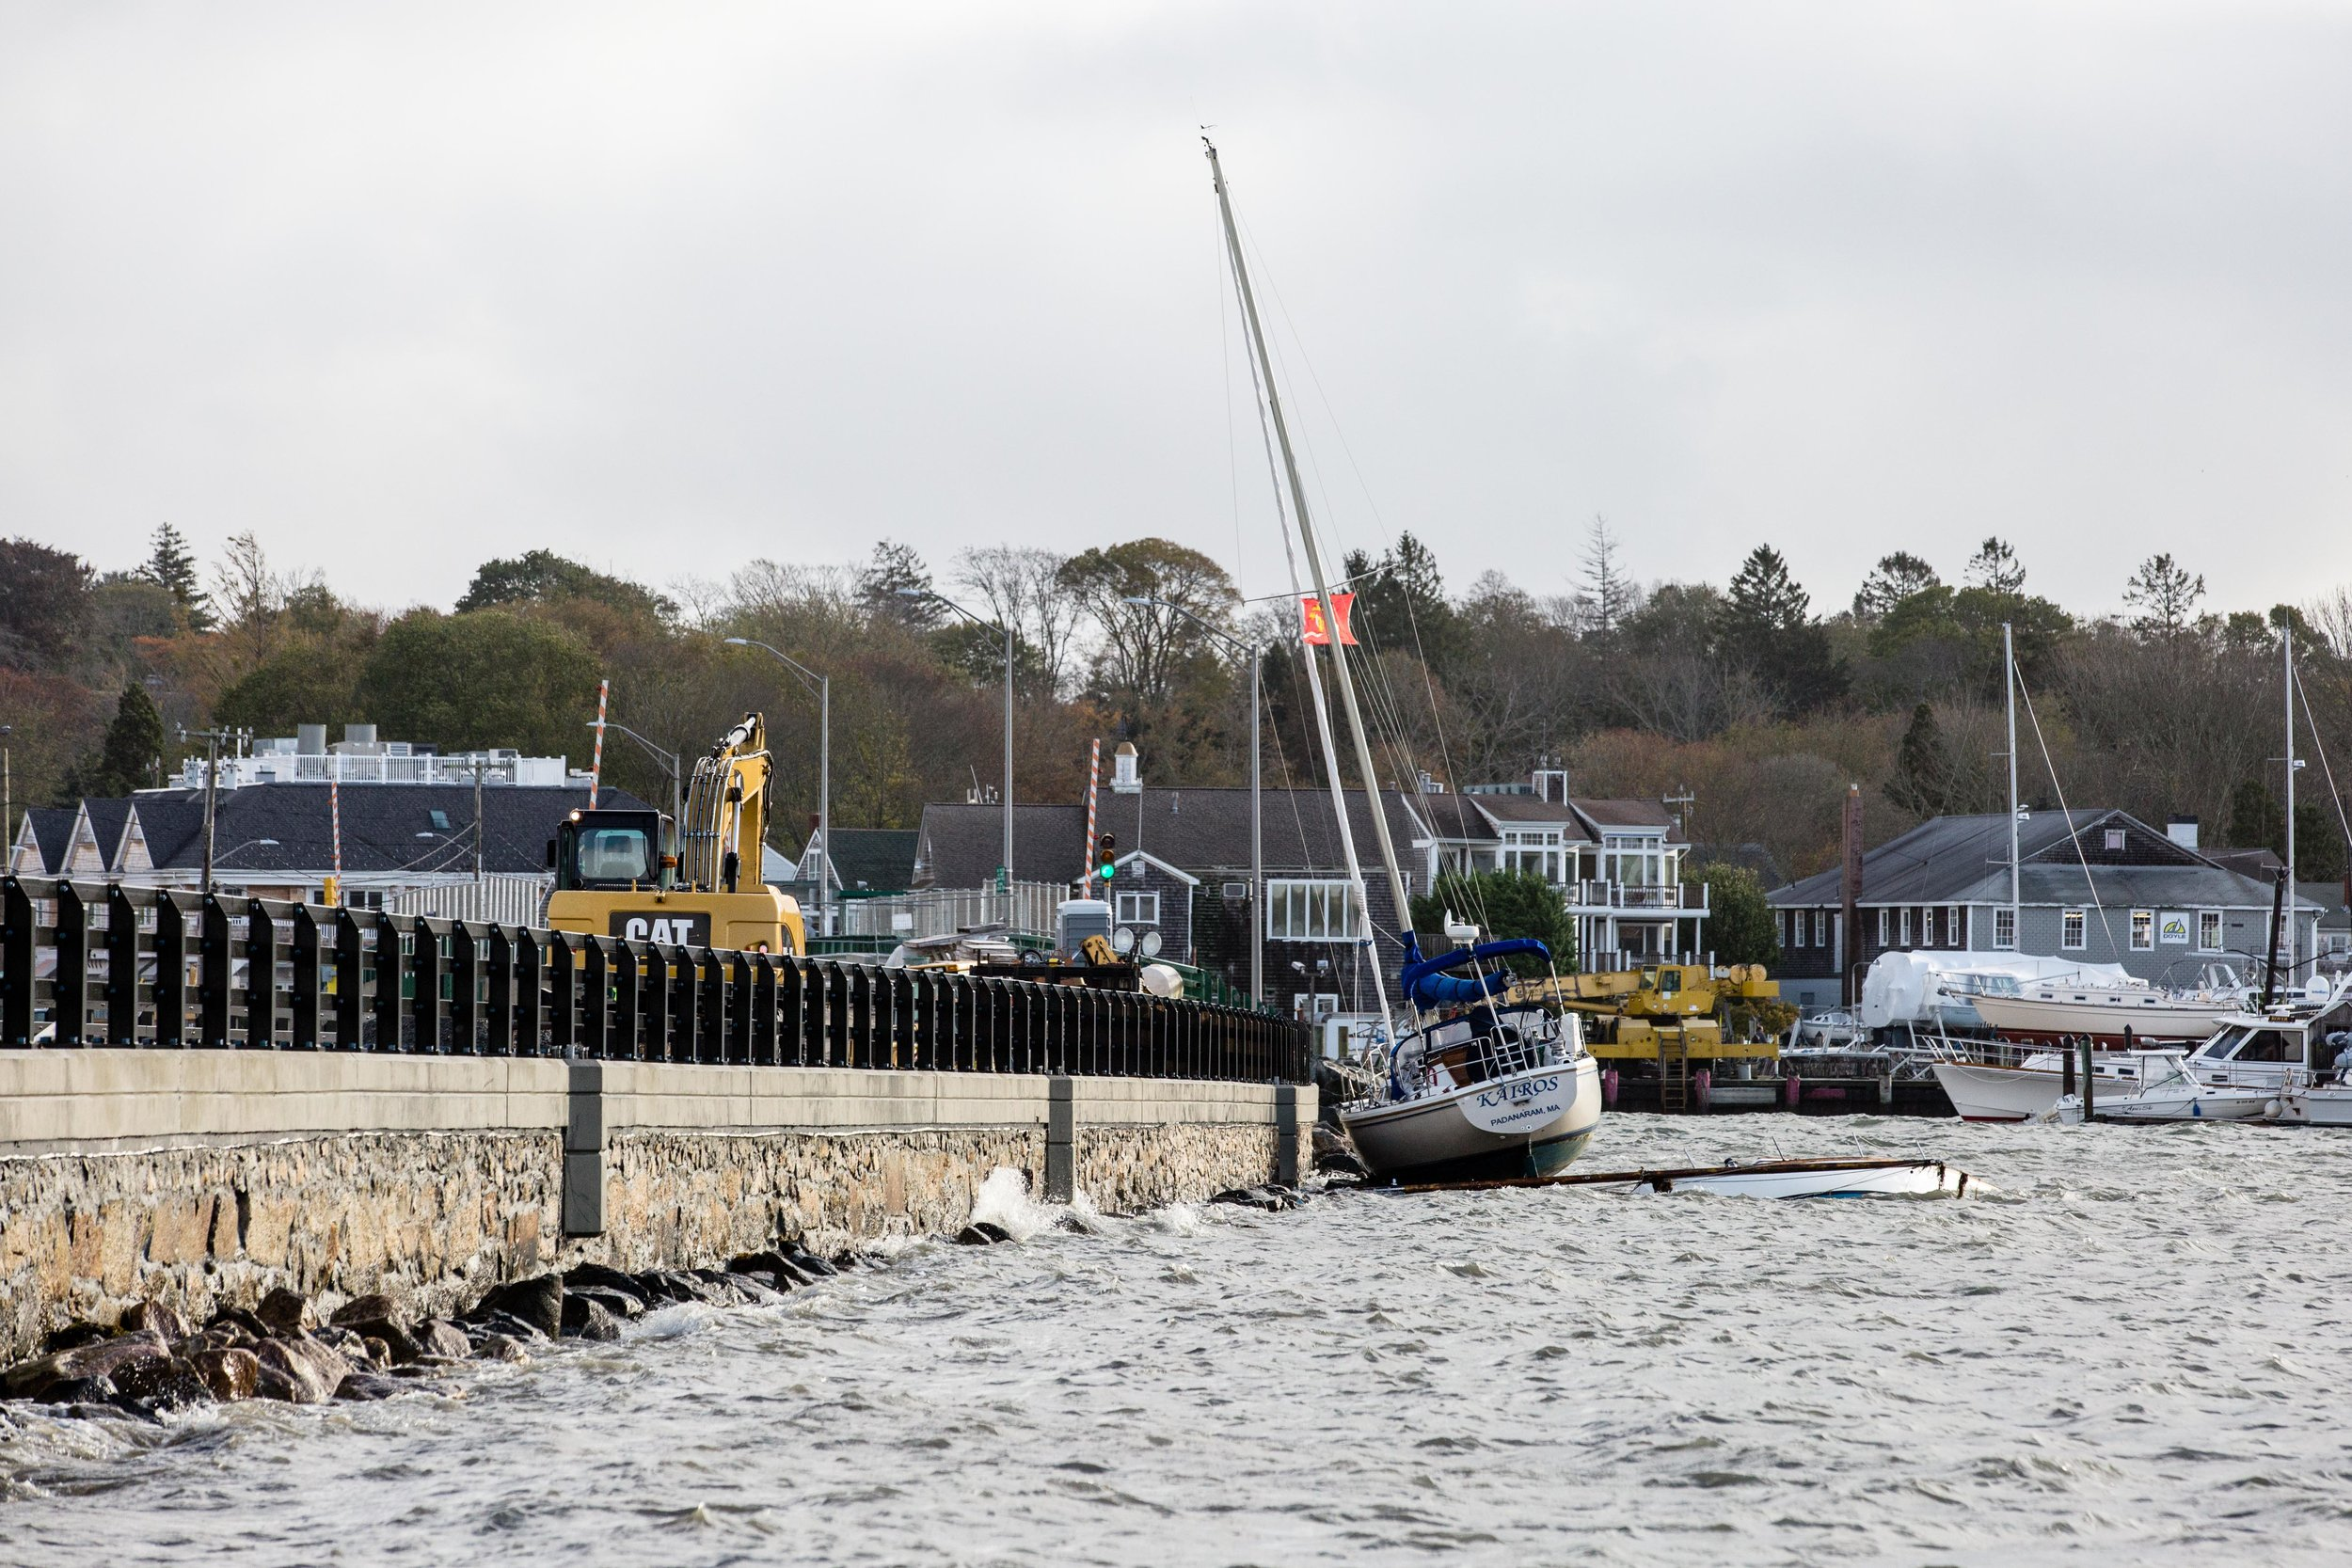 A sailboat gets stuck against the causeway while a capsized powerboat lies beneath it.